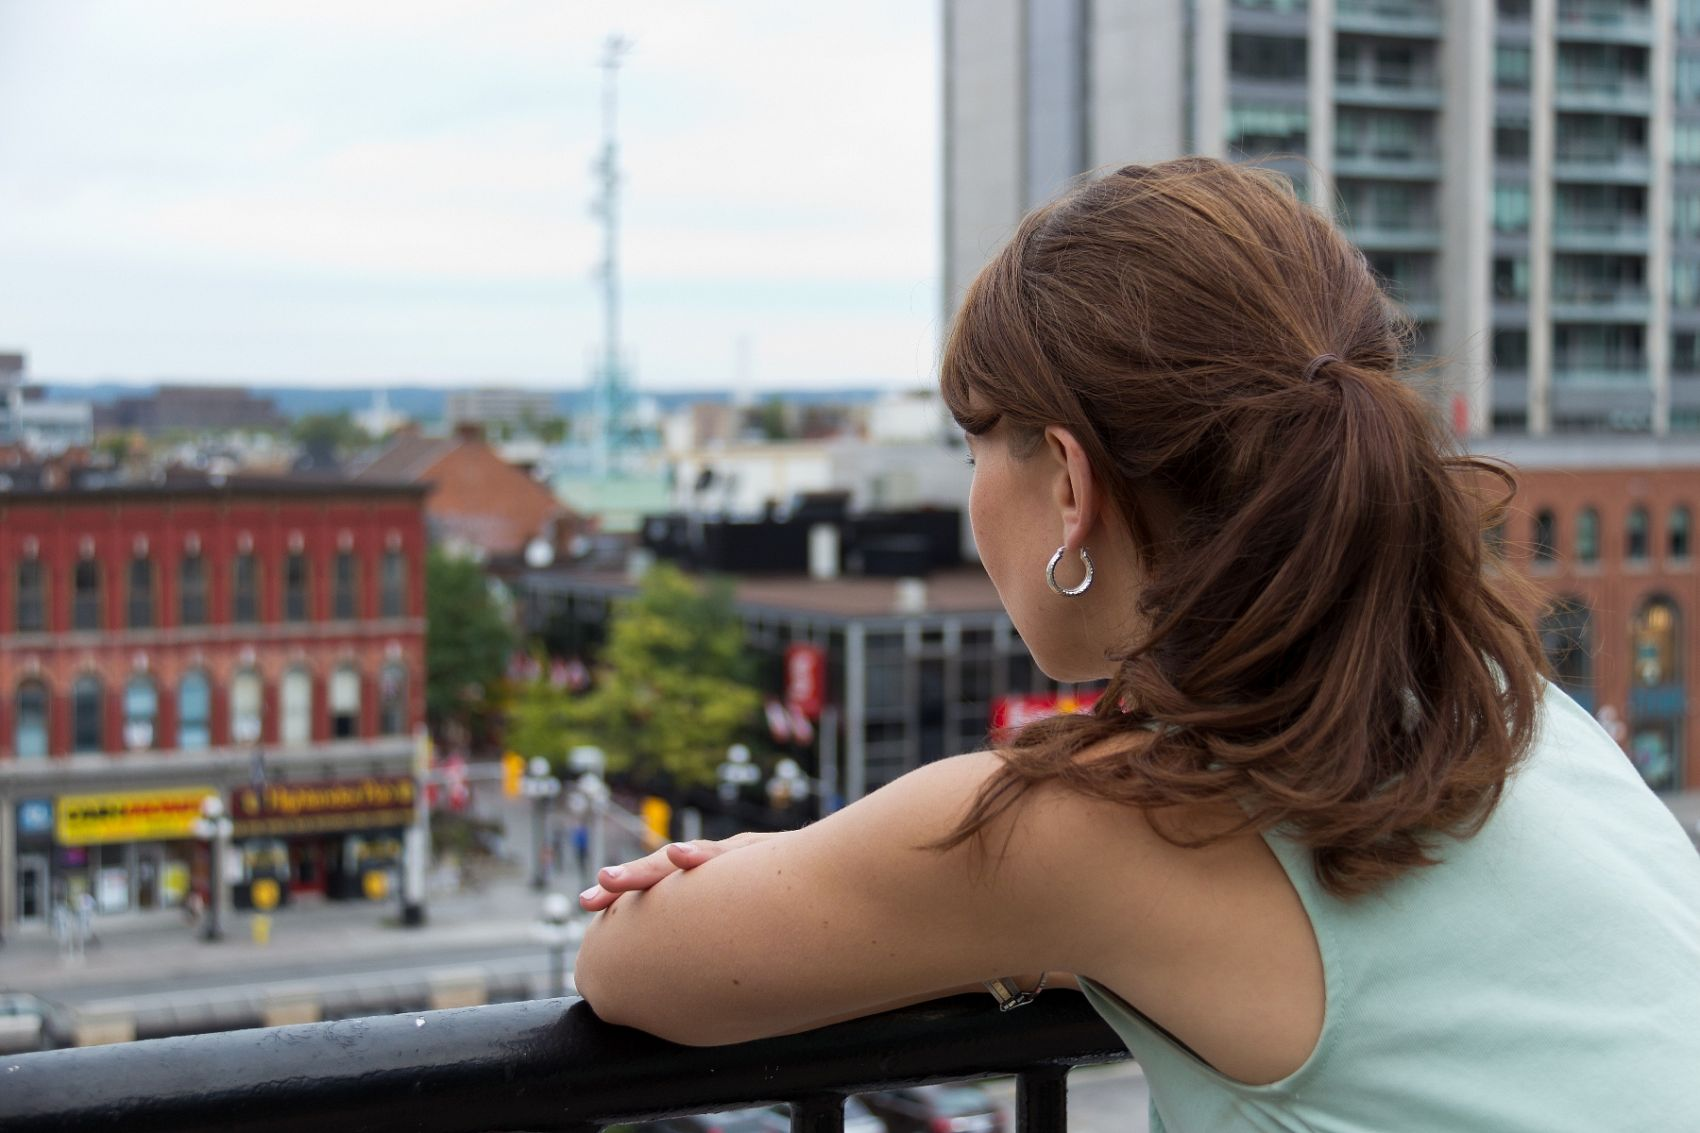 Reflections on Turning 40 While Single and Childless | Institute for